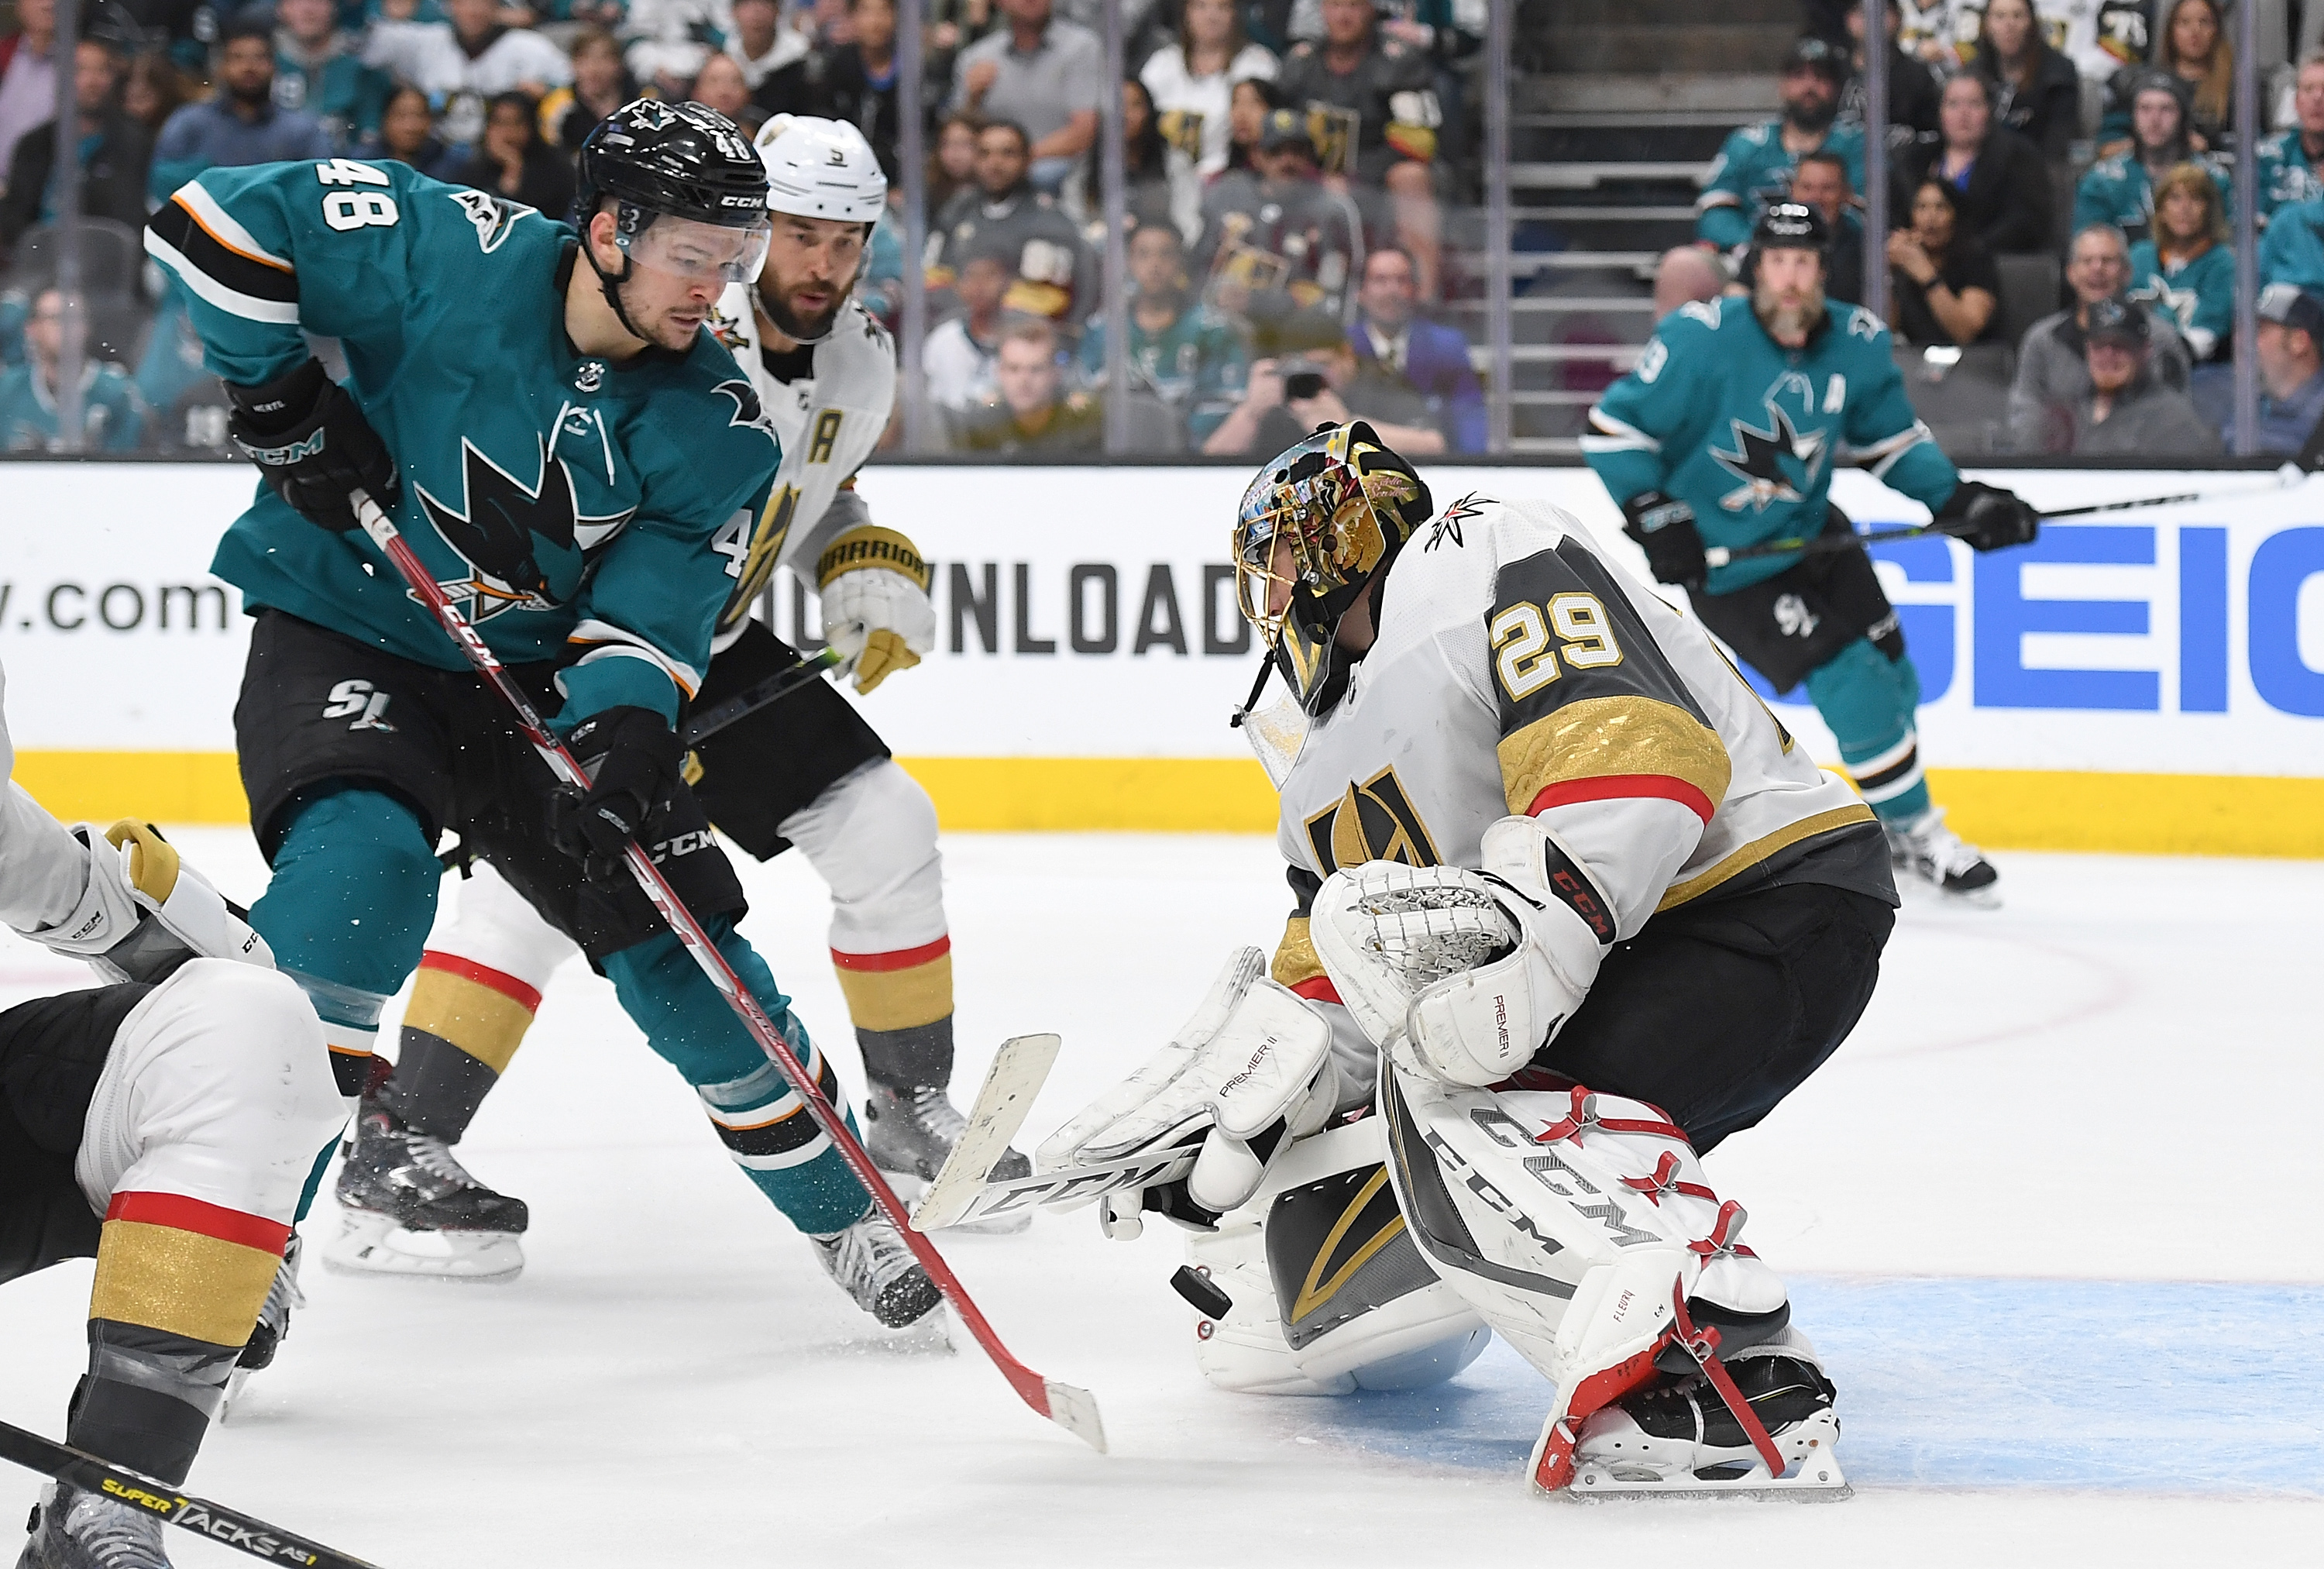 Goalie Marc-Andre Fleury #29 of the Vegas Golden Knights defends his goal agains the shot of Tomas Hertl #48 of the San Jose Sharks during the second period in Game Two of the Western Conference First Round during the 2019 NHL Stanley Cup Playoffs at SAP